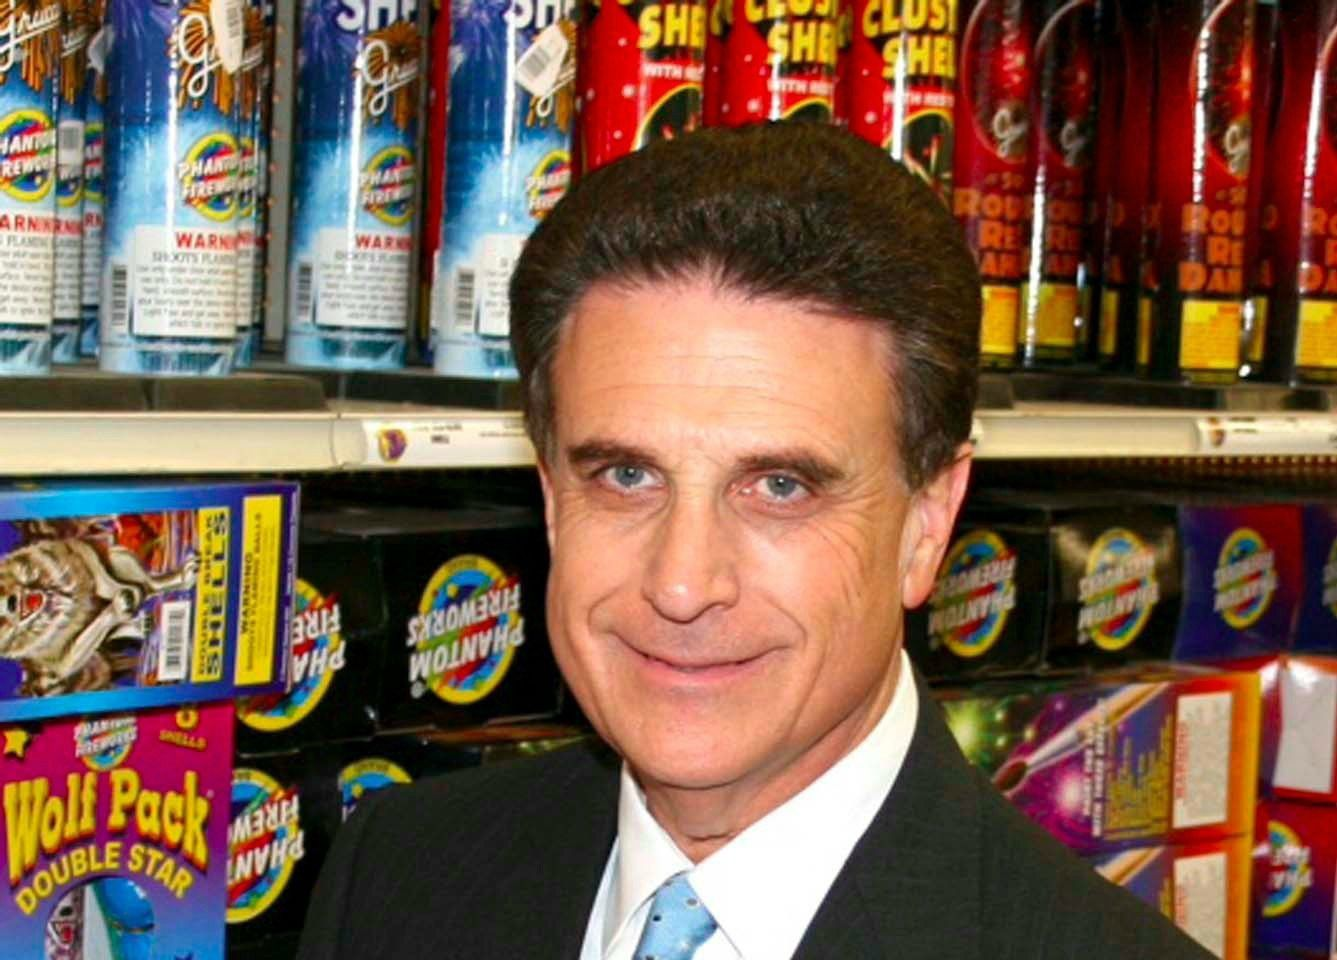 Business Just Skyrocketed: Bruce Zolan's B.J. Alan Co. offers one of the country's widest arrays of consumer fireworks.